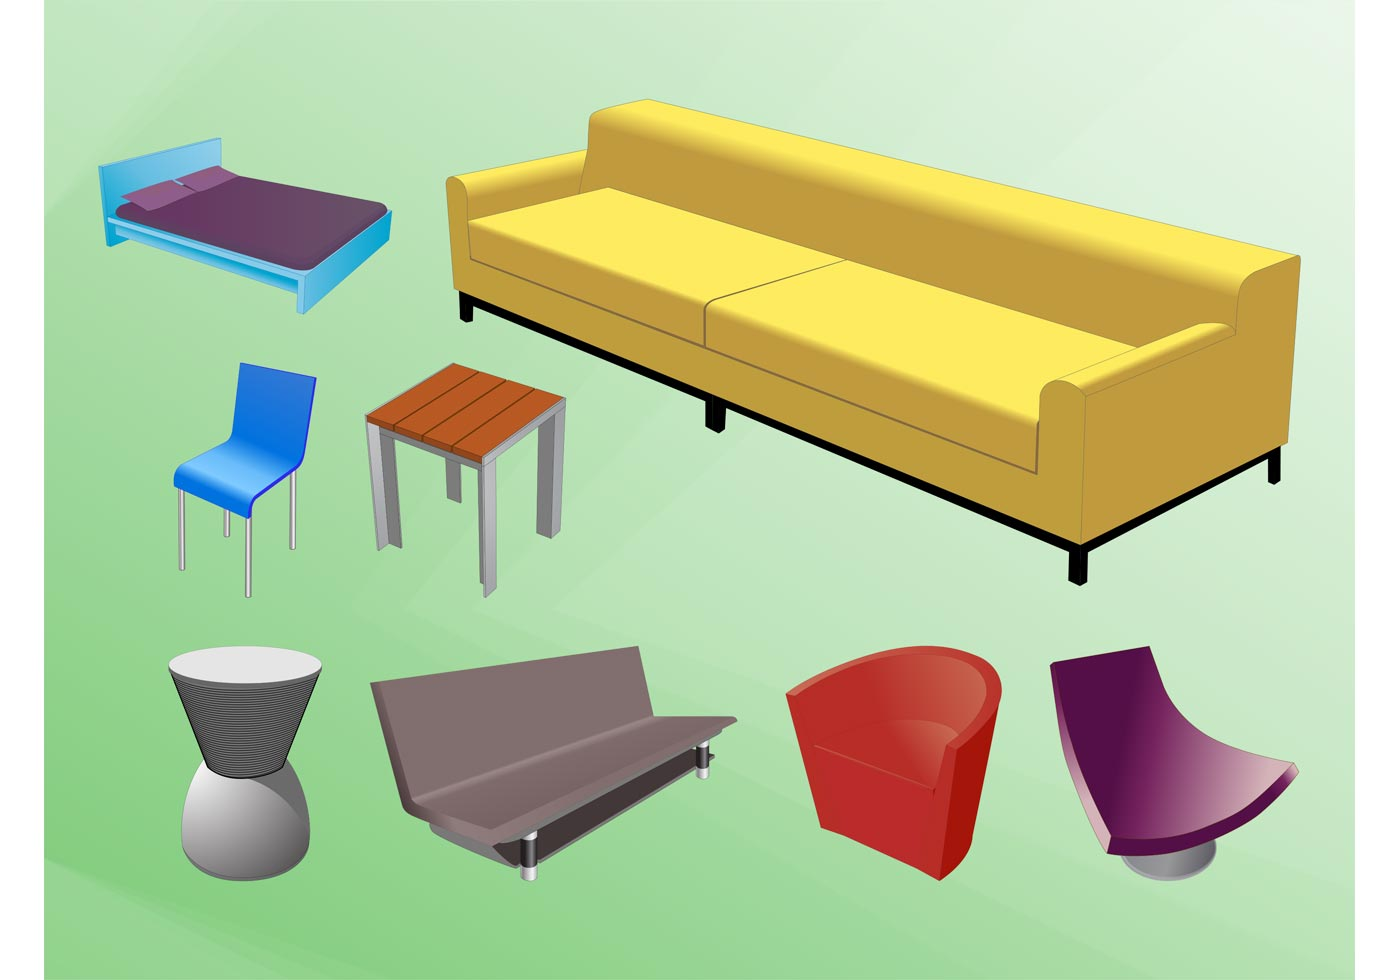 Furniture designs download free vector art stock Furniture design software free download